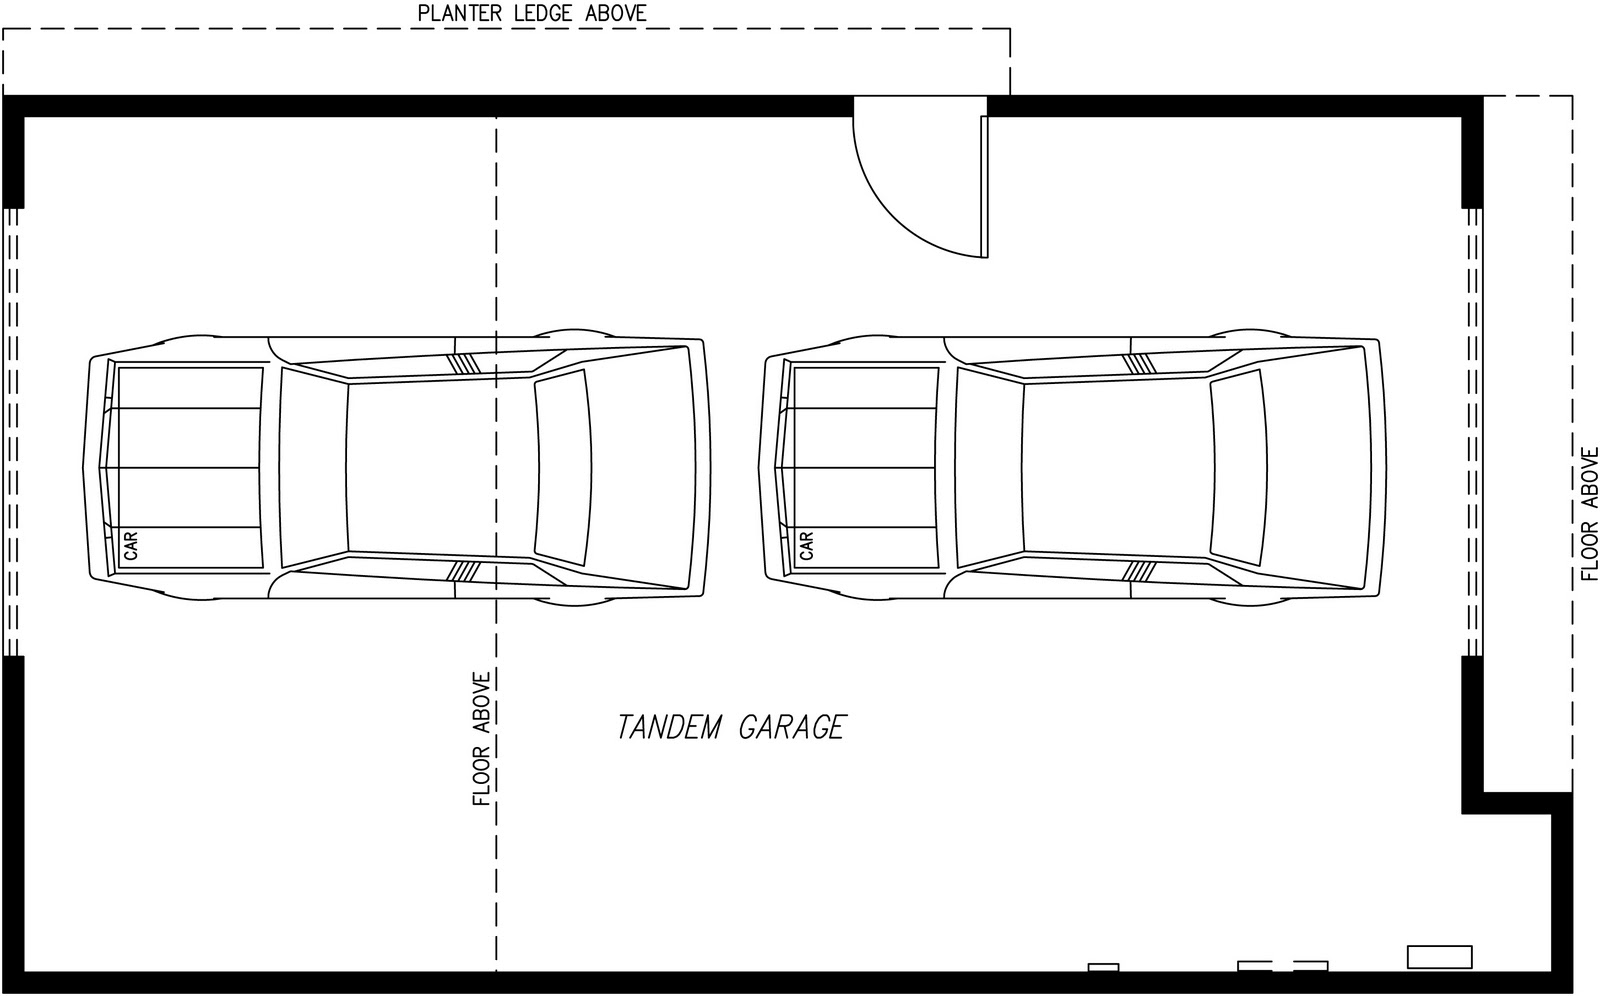 2 car tandem garage plans bing images for 2 car tandem garage